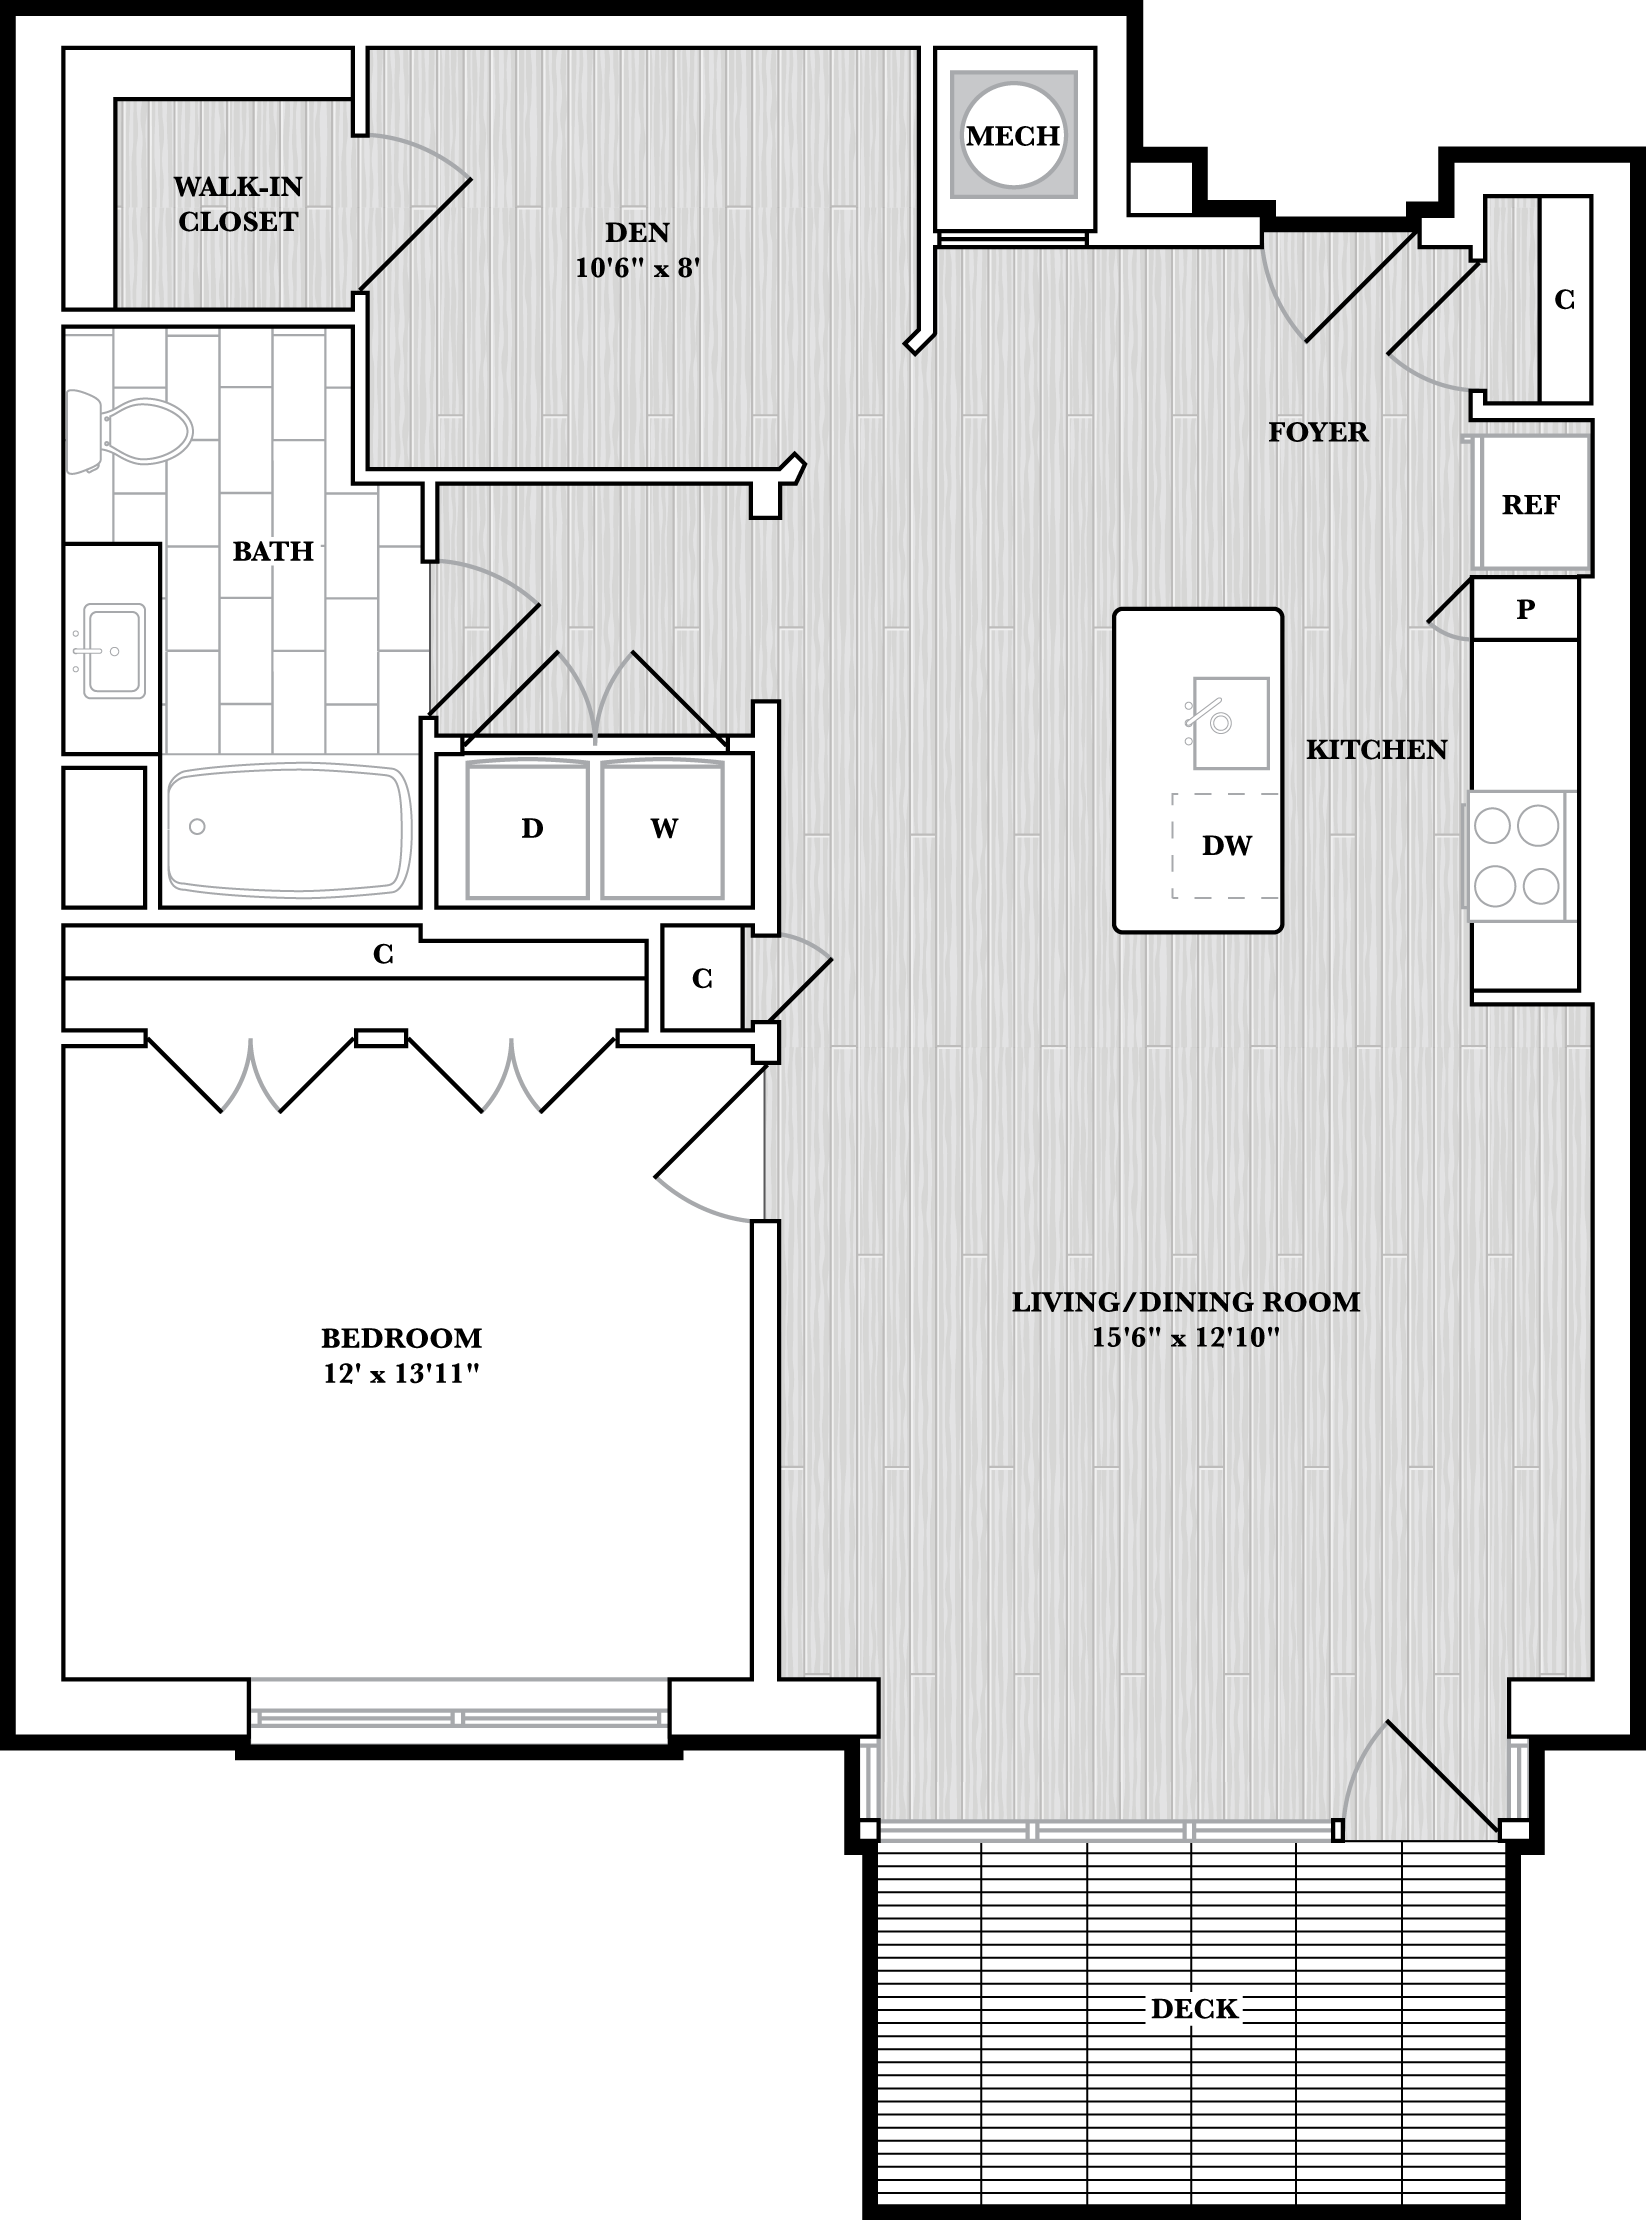 floorplan image of S211